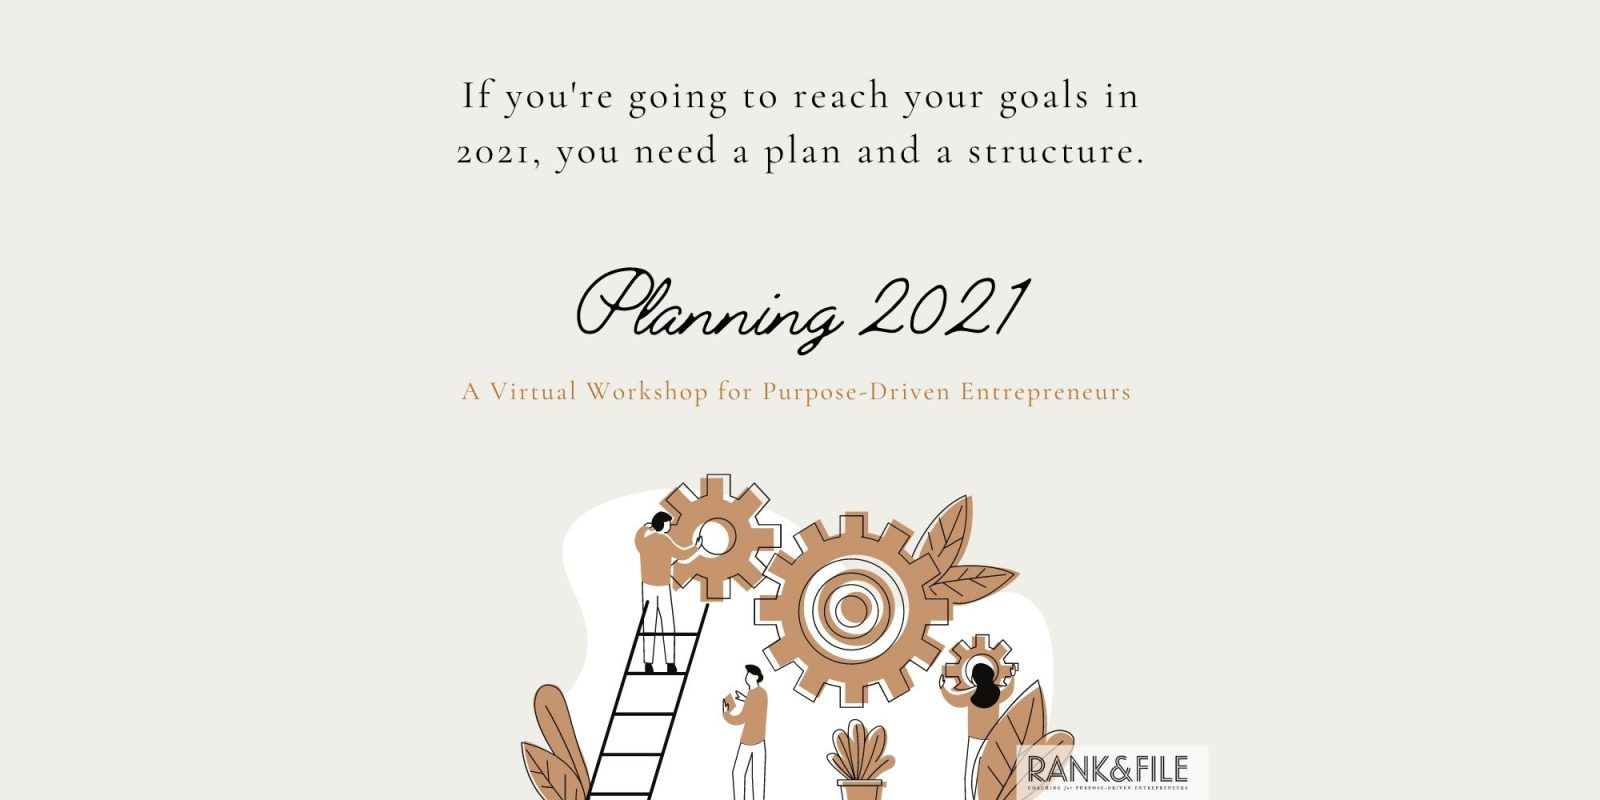 Planning 2021 - A Virtual Workshop for Purpose-Driven Entrepreneurs - Set Goals and Get a Structure in Place